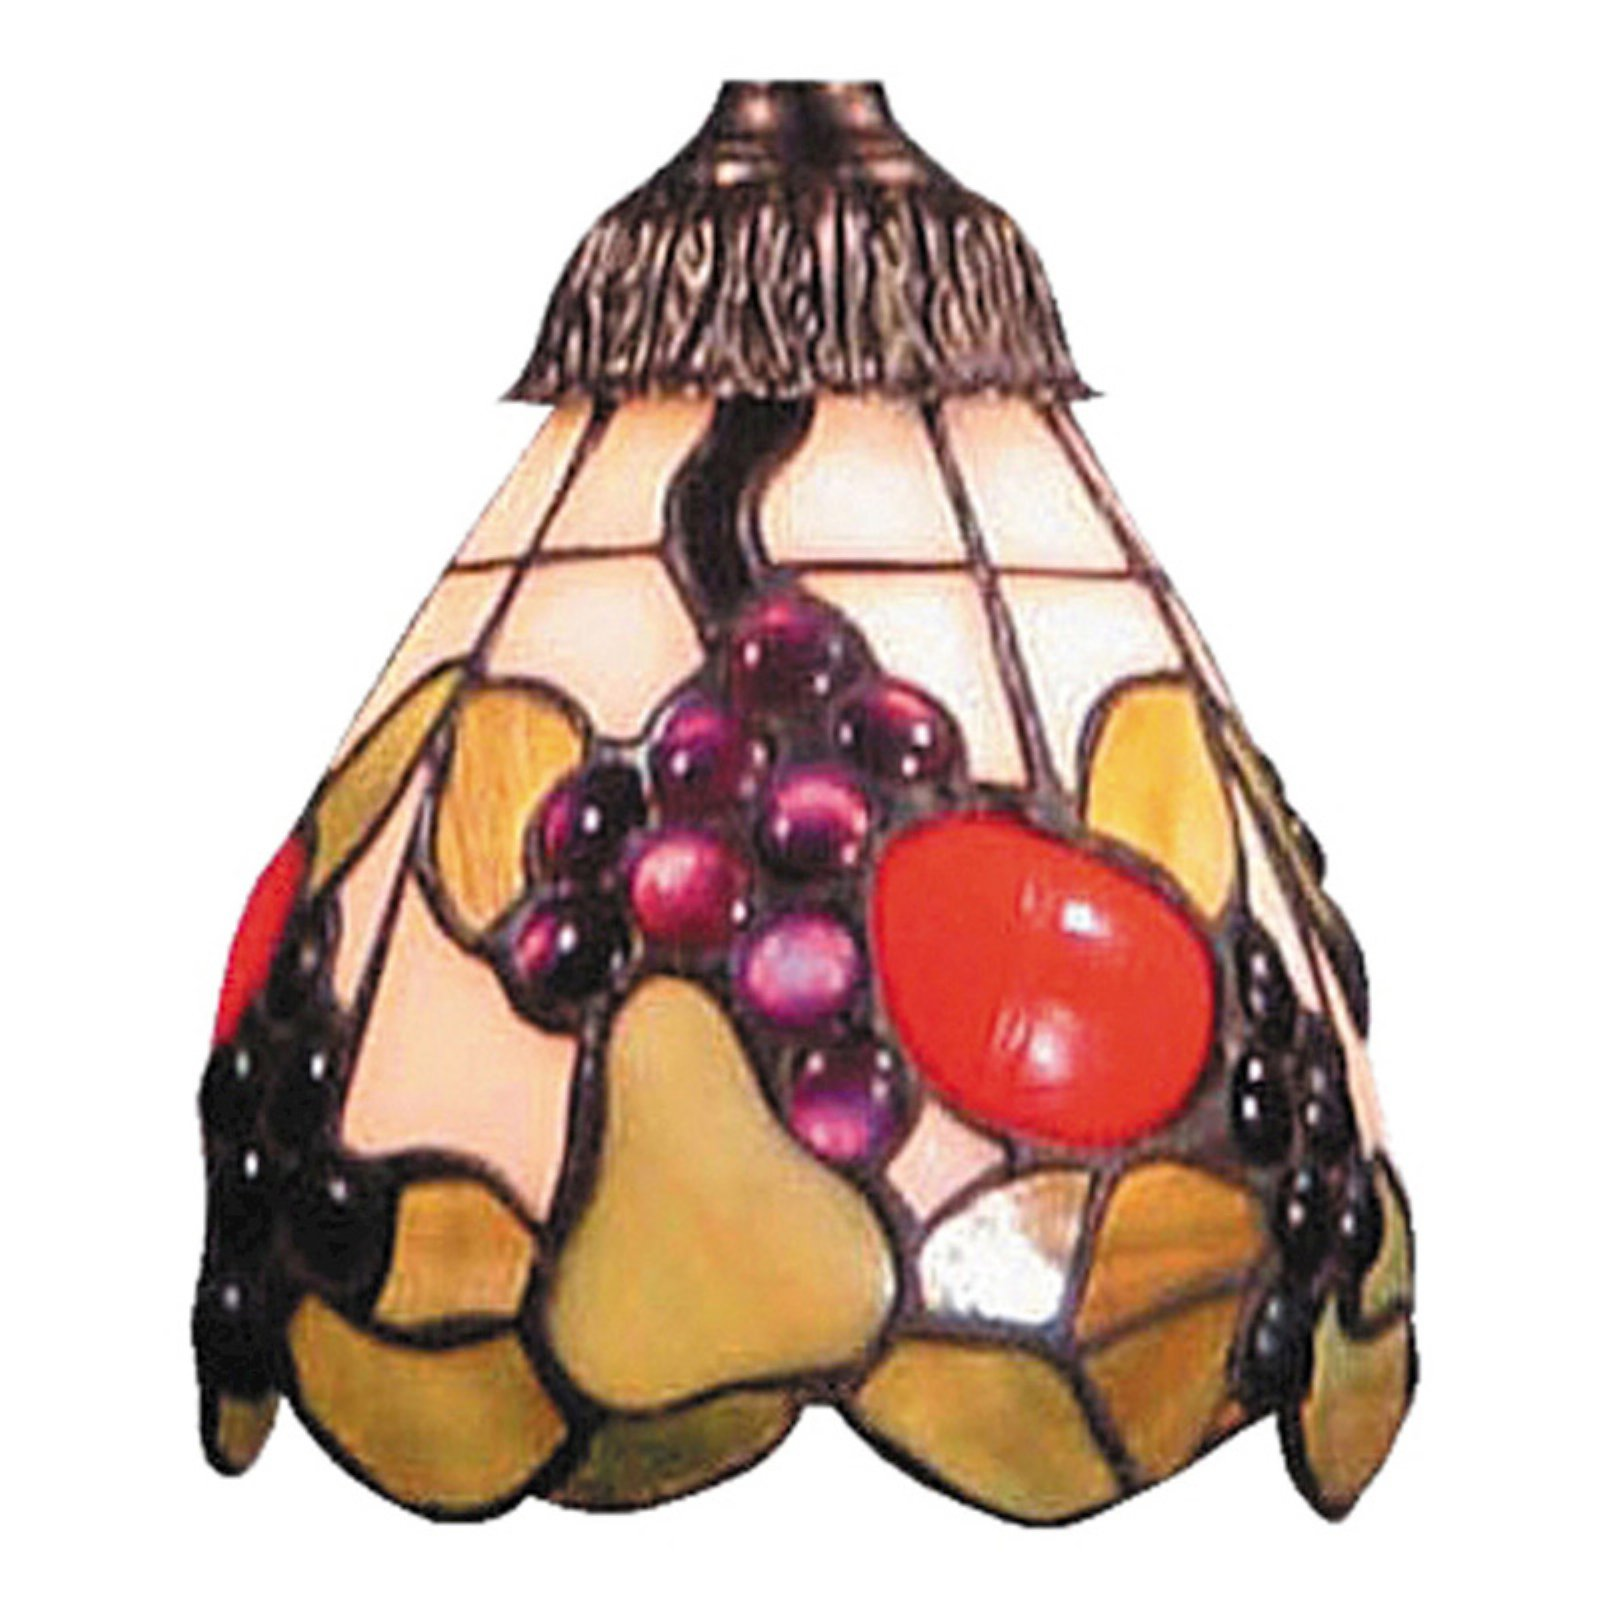 ELK Lighting Mix-N-Match 999-19 Tiffany Fruit Glass Shade